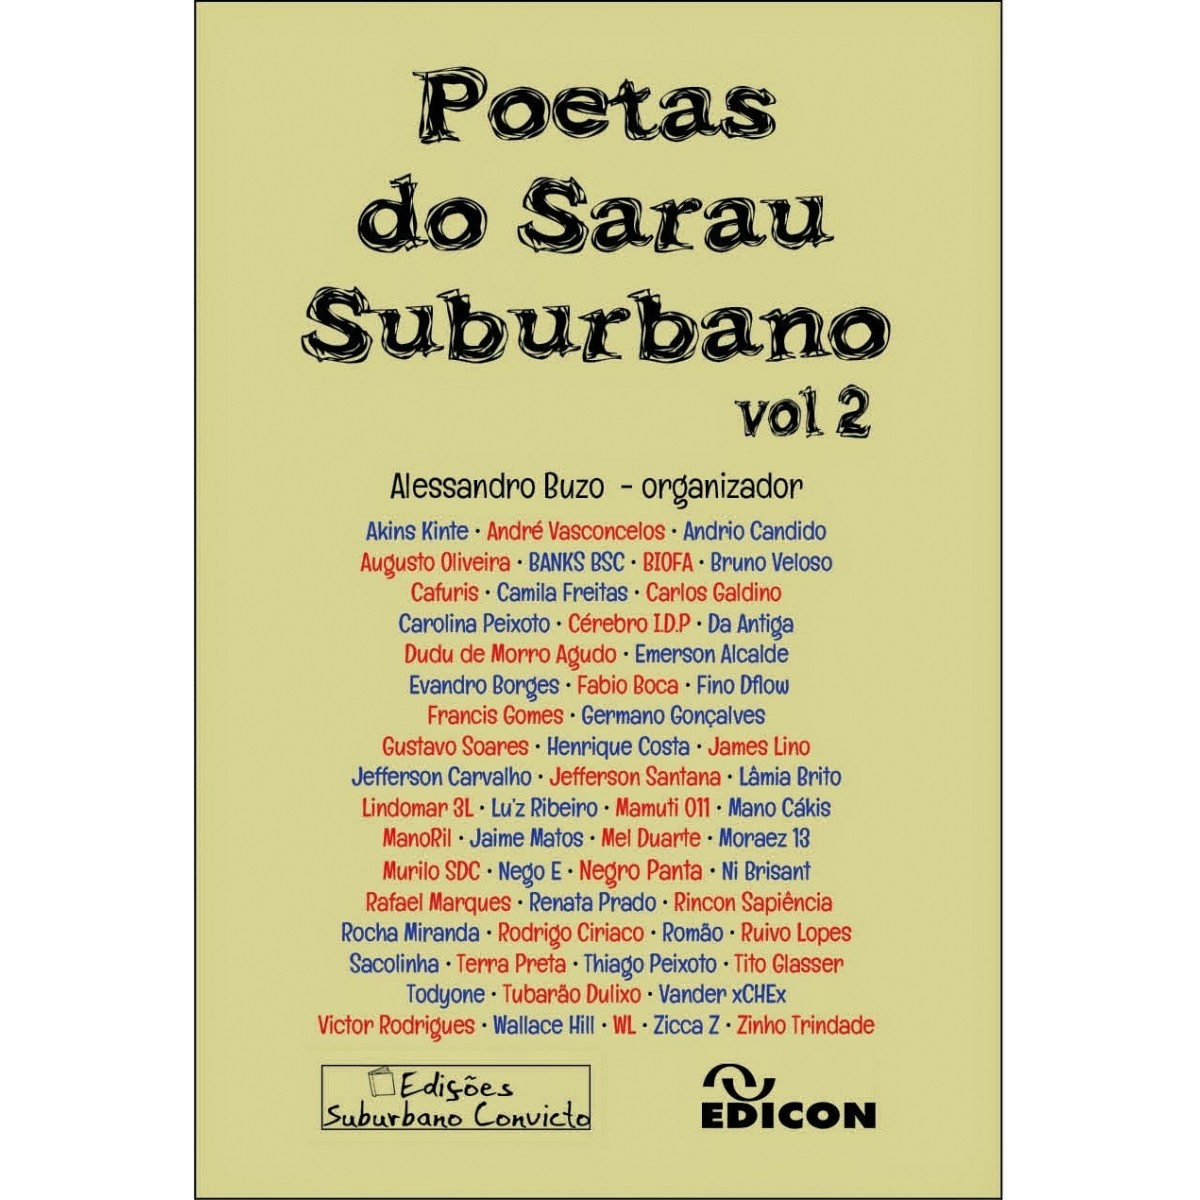 Poetas do Sarau Suburbano Vol. 2  - LiteraRUA